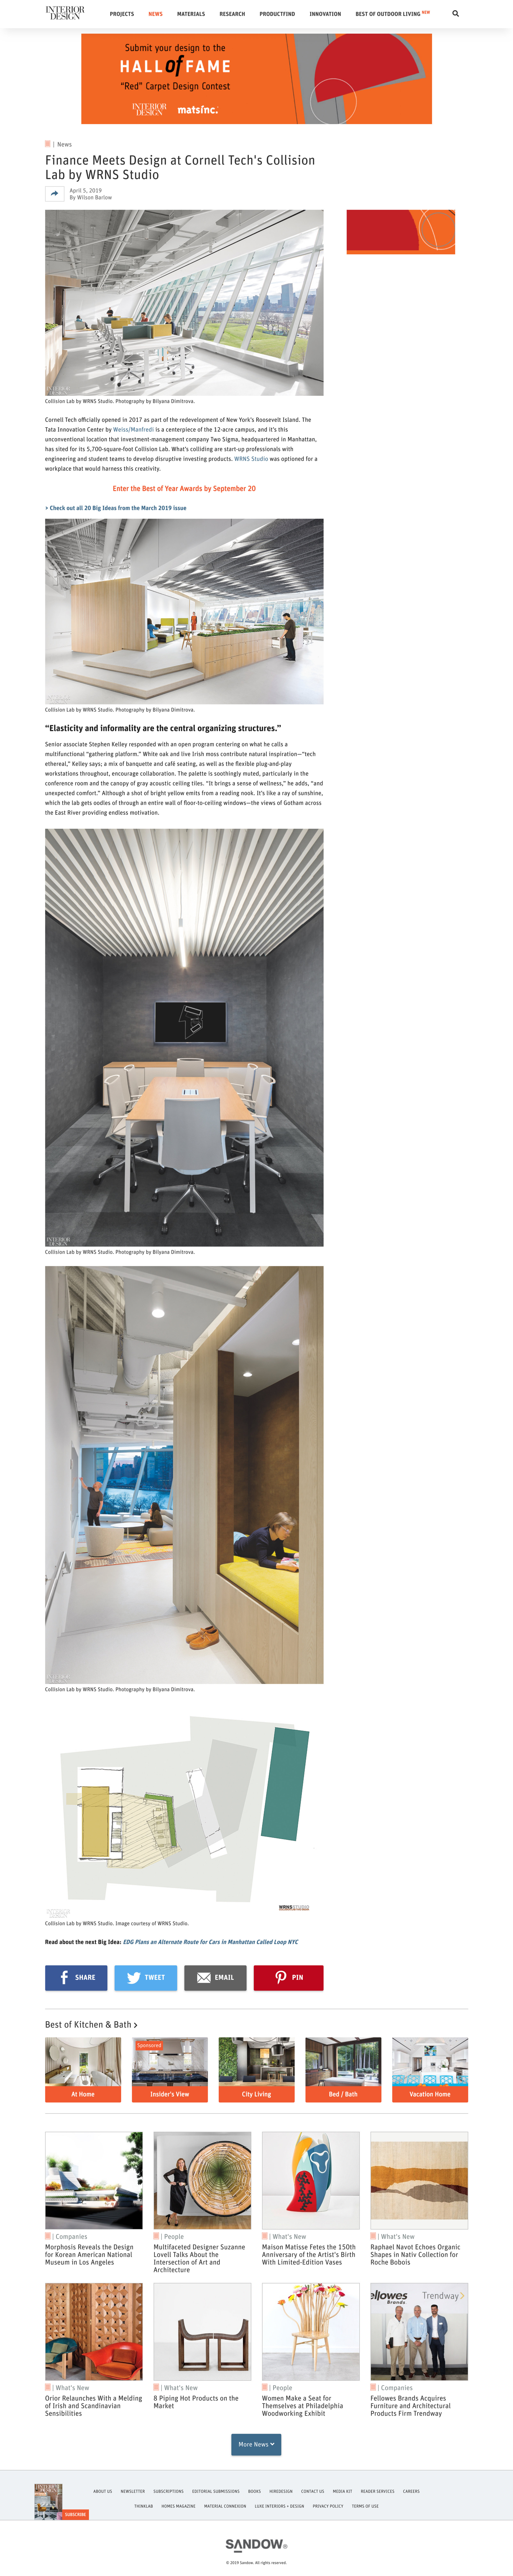 screencapture-interiordesign-net-articles-16182-finance-meets-design-at-cornell-tech-s-collision-lab-by-wrns-studio-2019-08-20-13_22_33.jpg